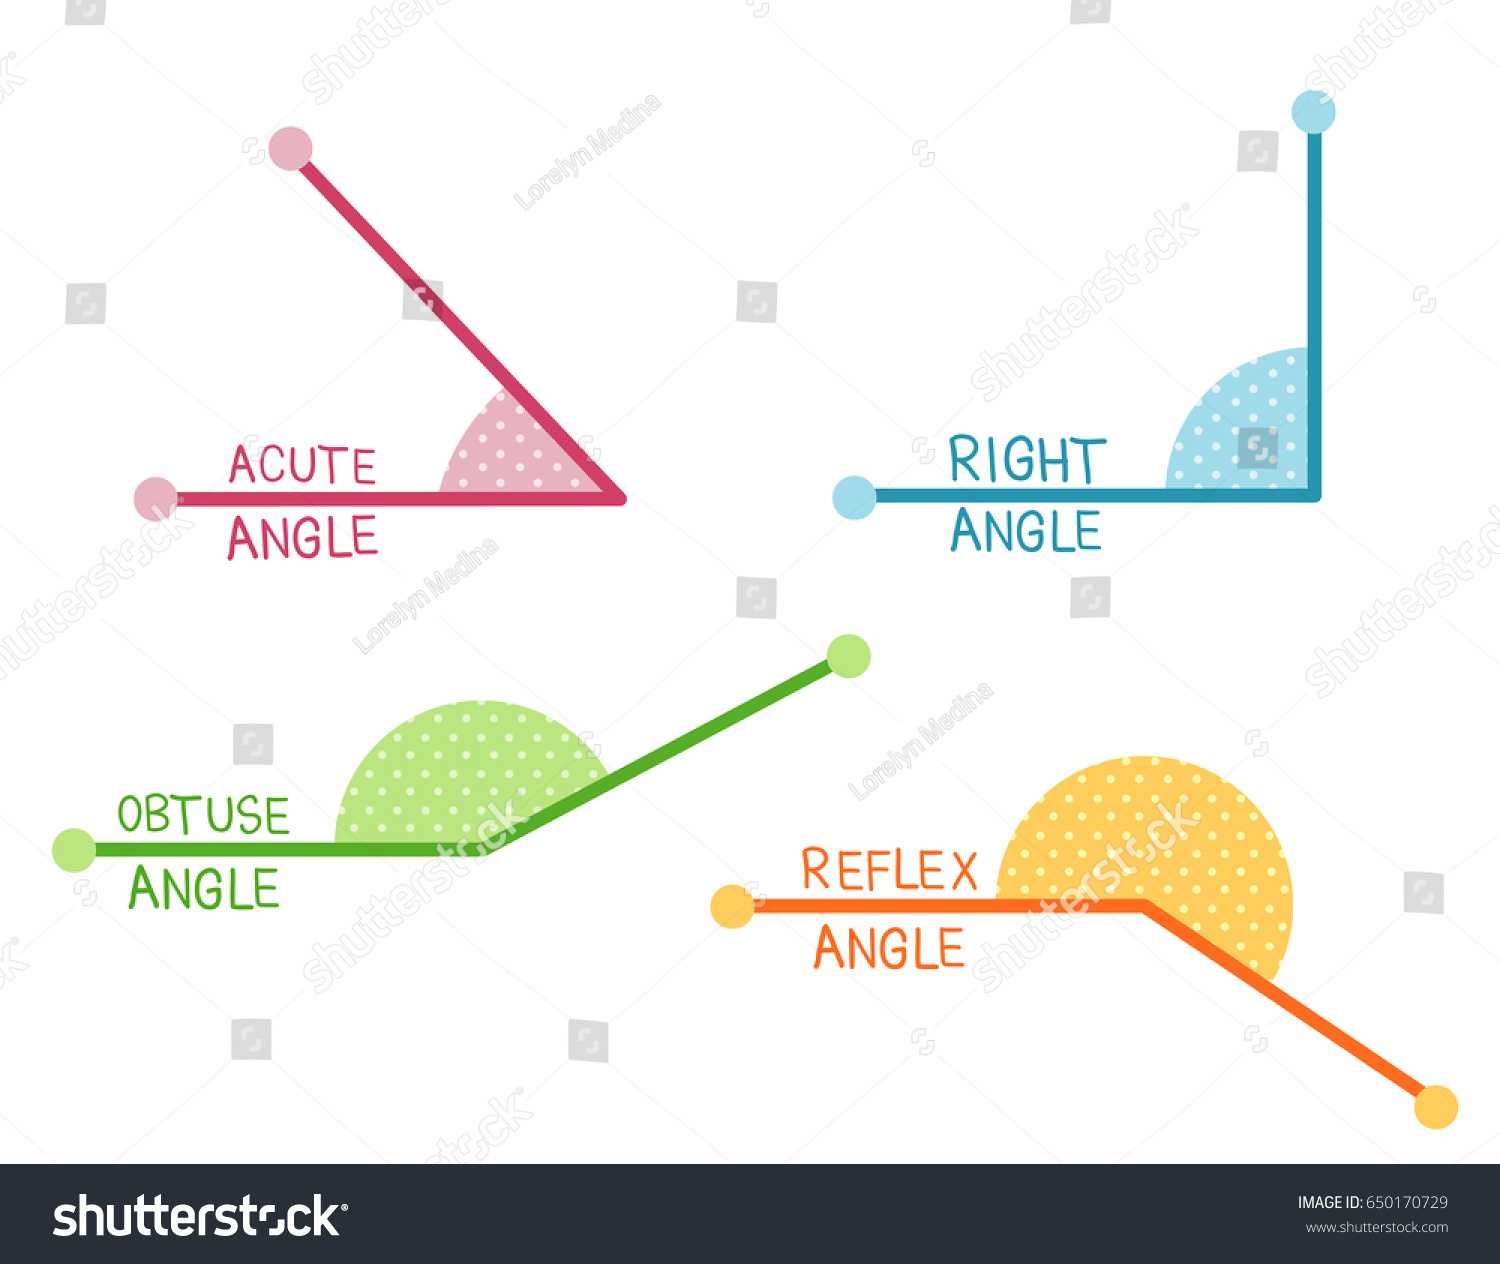 Illustration acute right obtuse reflex angles stock vector illustration of acute right obtuse and reflex angles in different colors biocorpaavc Image collections